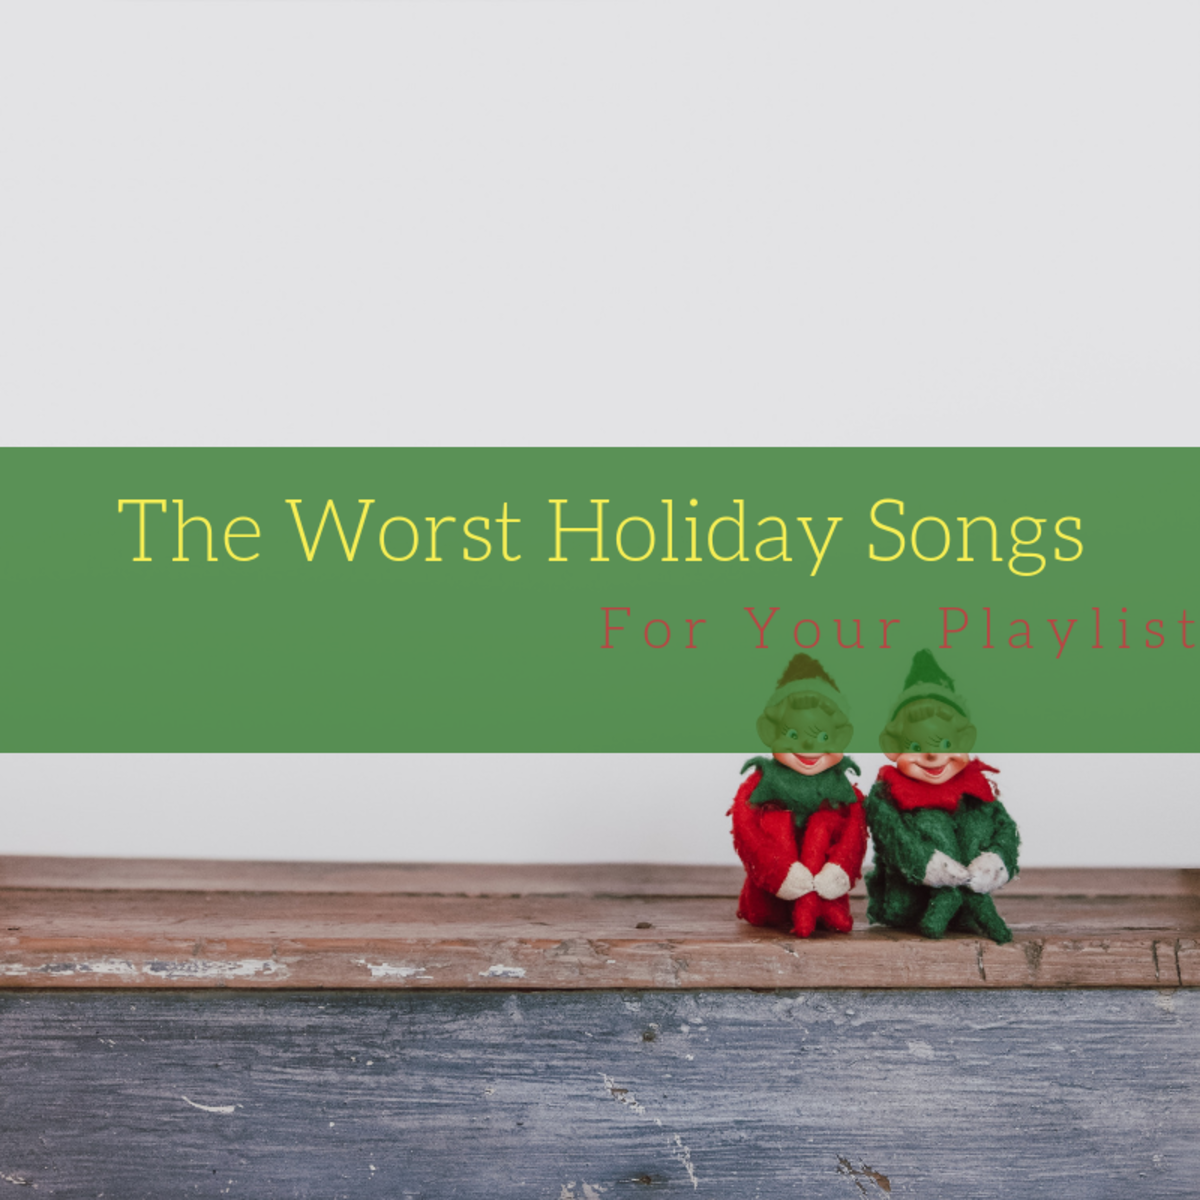 You might lose friends and family if any of these songs snuck their way on your playlist this holiday season.